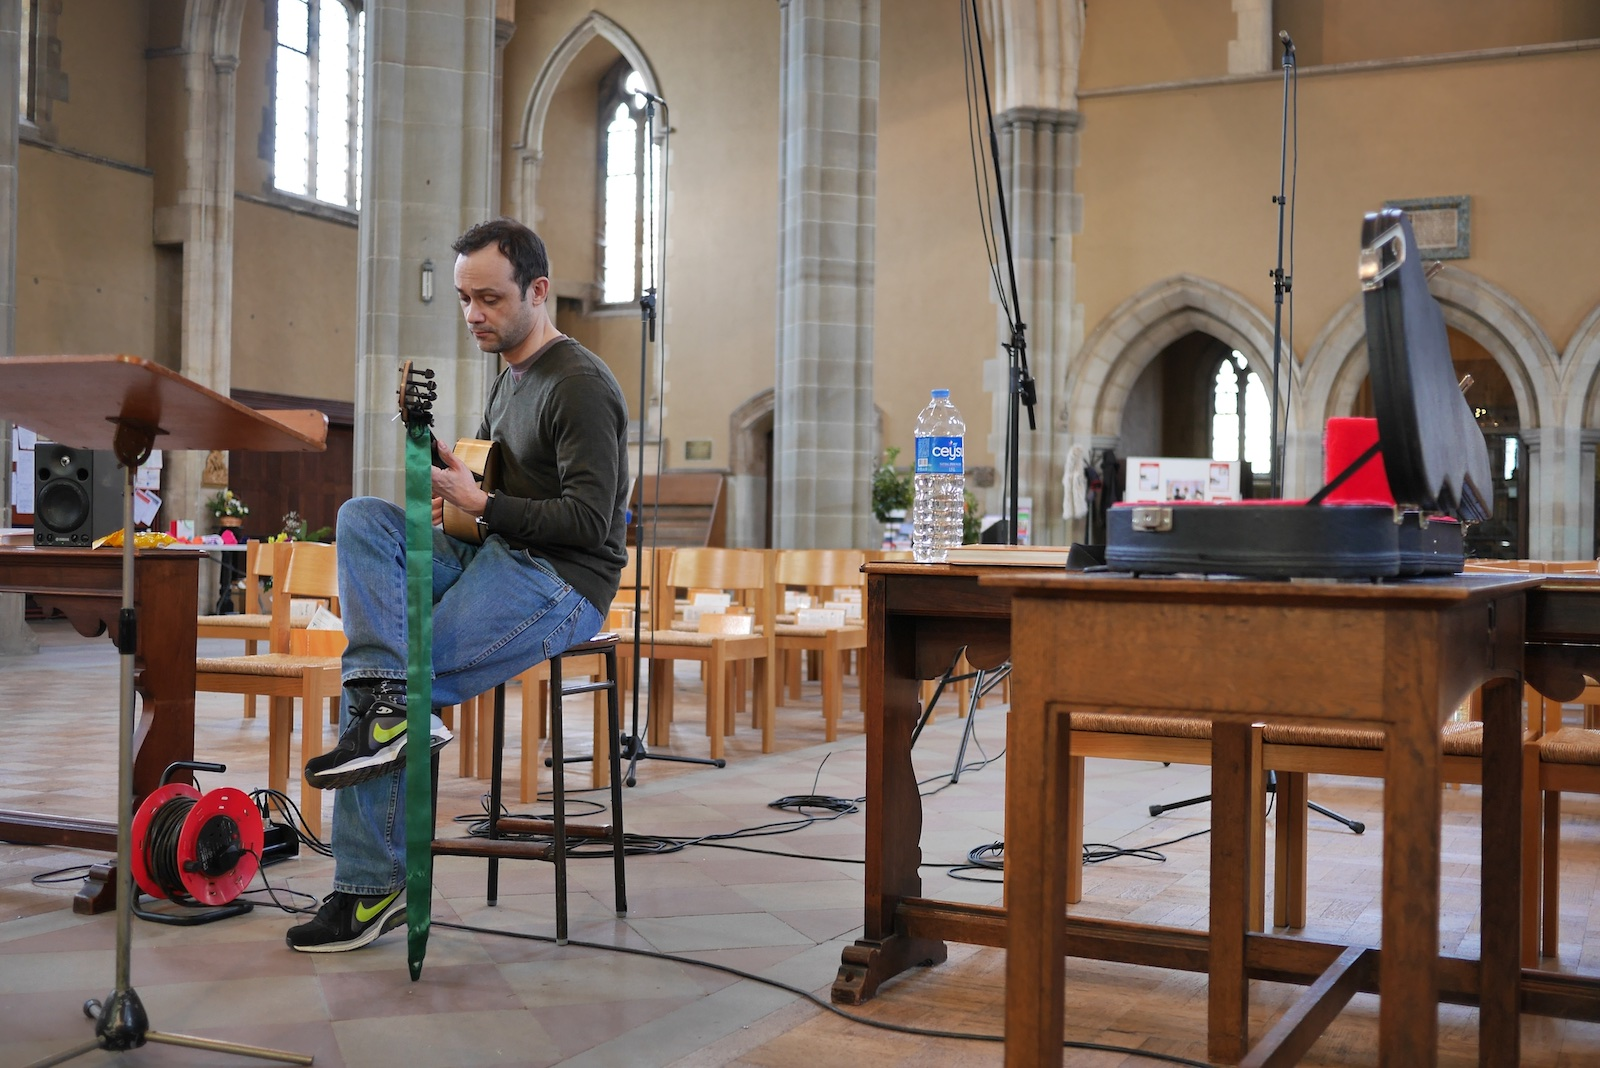 Eligio Quinteiro sitting alone in conducting position in the church, holding guitar